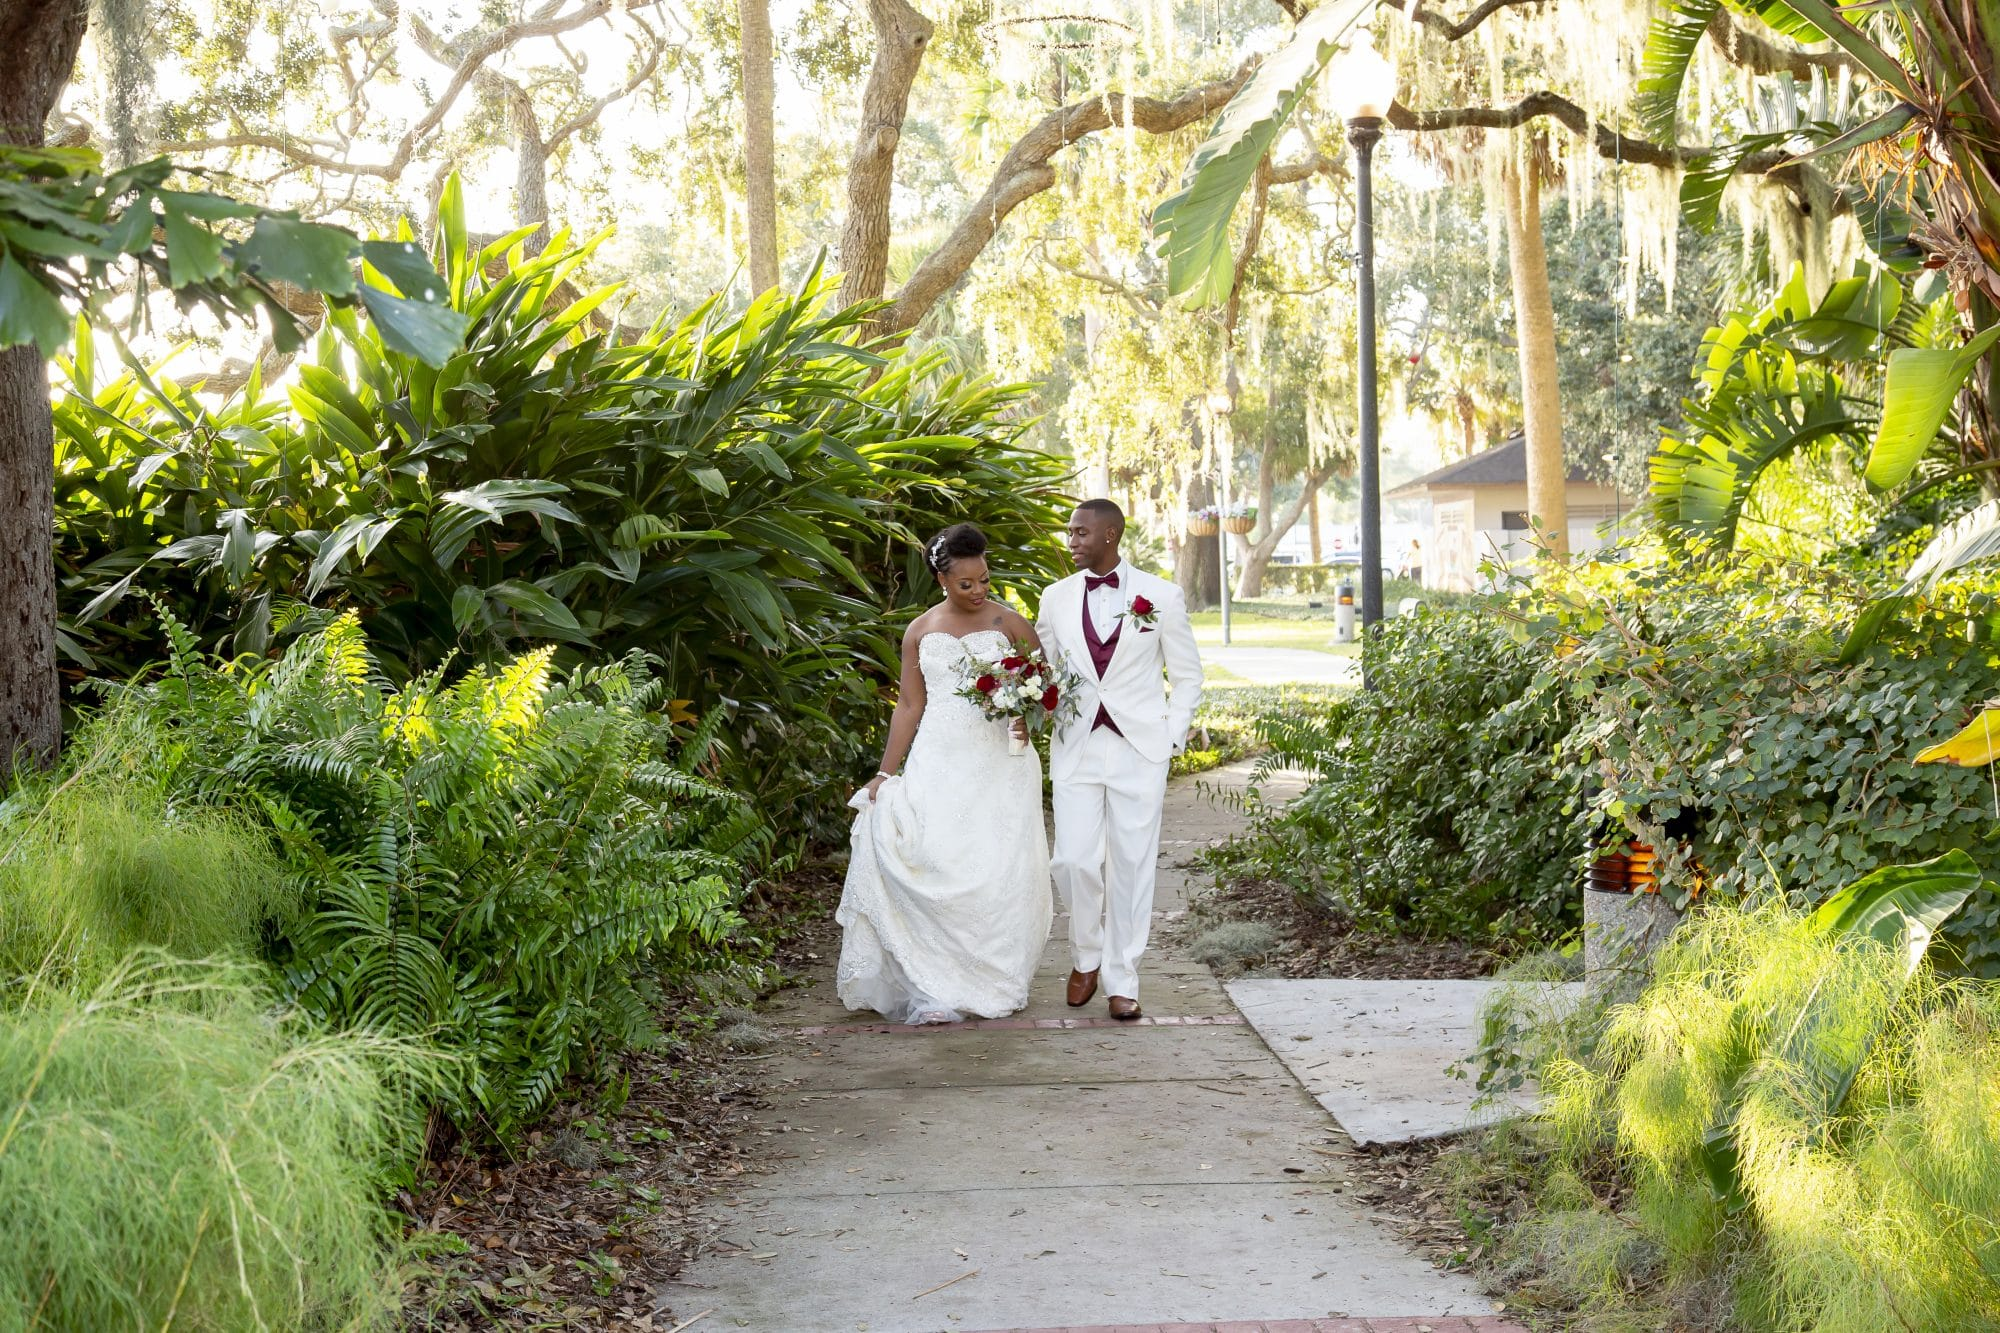 Shaneika and Richard strolling the grounds